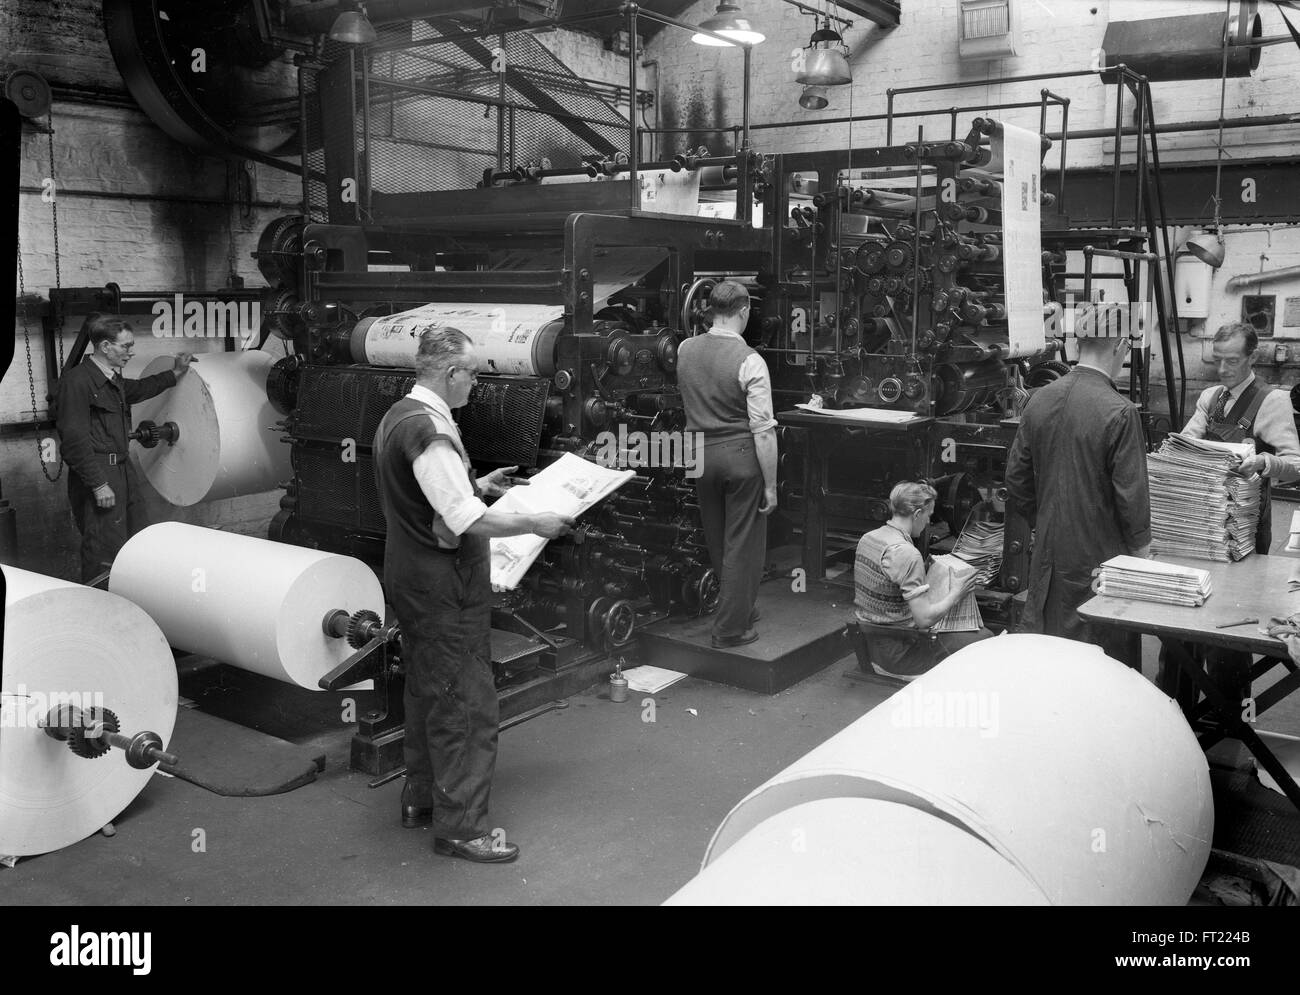 Newspaper production press Britain 1960s 1950s newspapers staff print workers printers worker plate making history - Stock Image